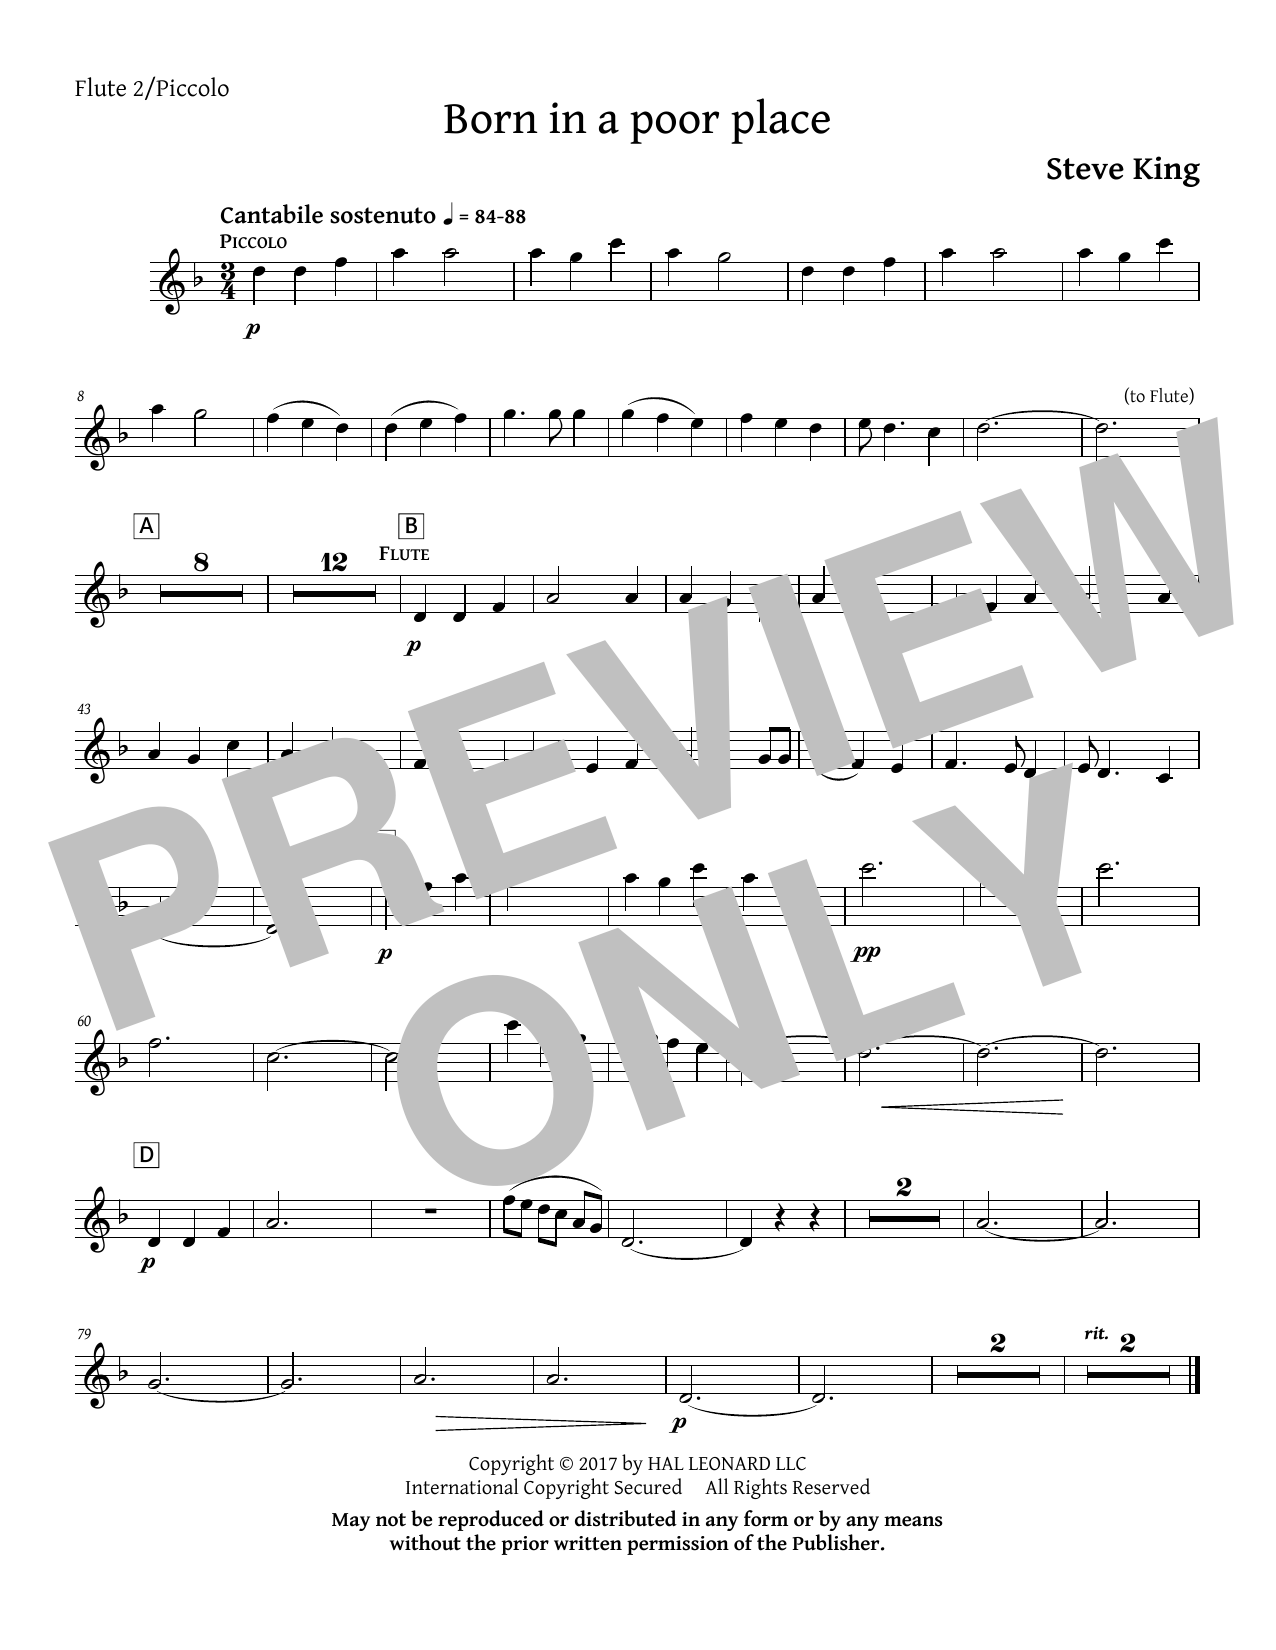 Born in a Poor Place - Flute 2 Sheet Music